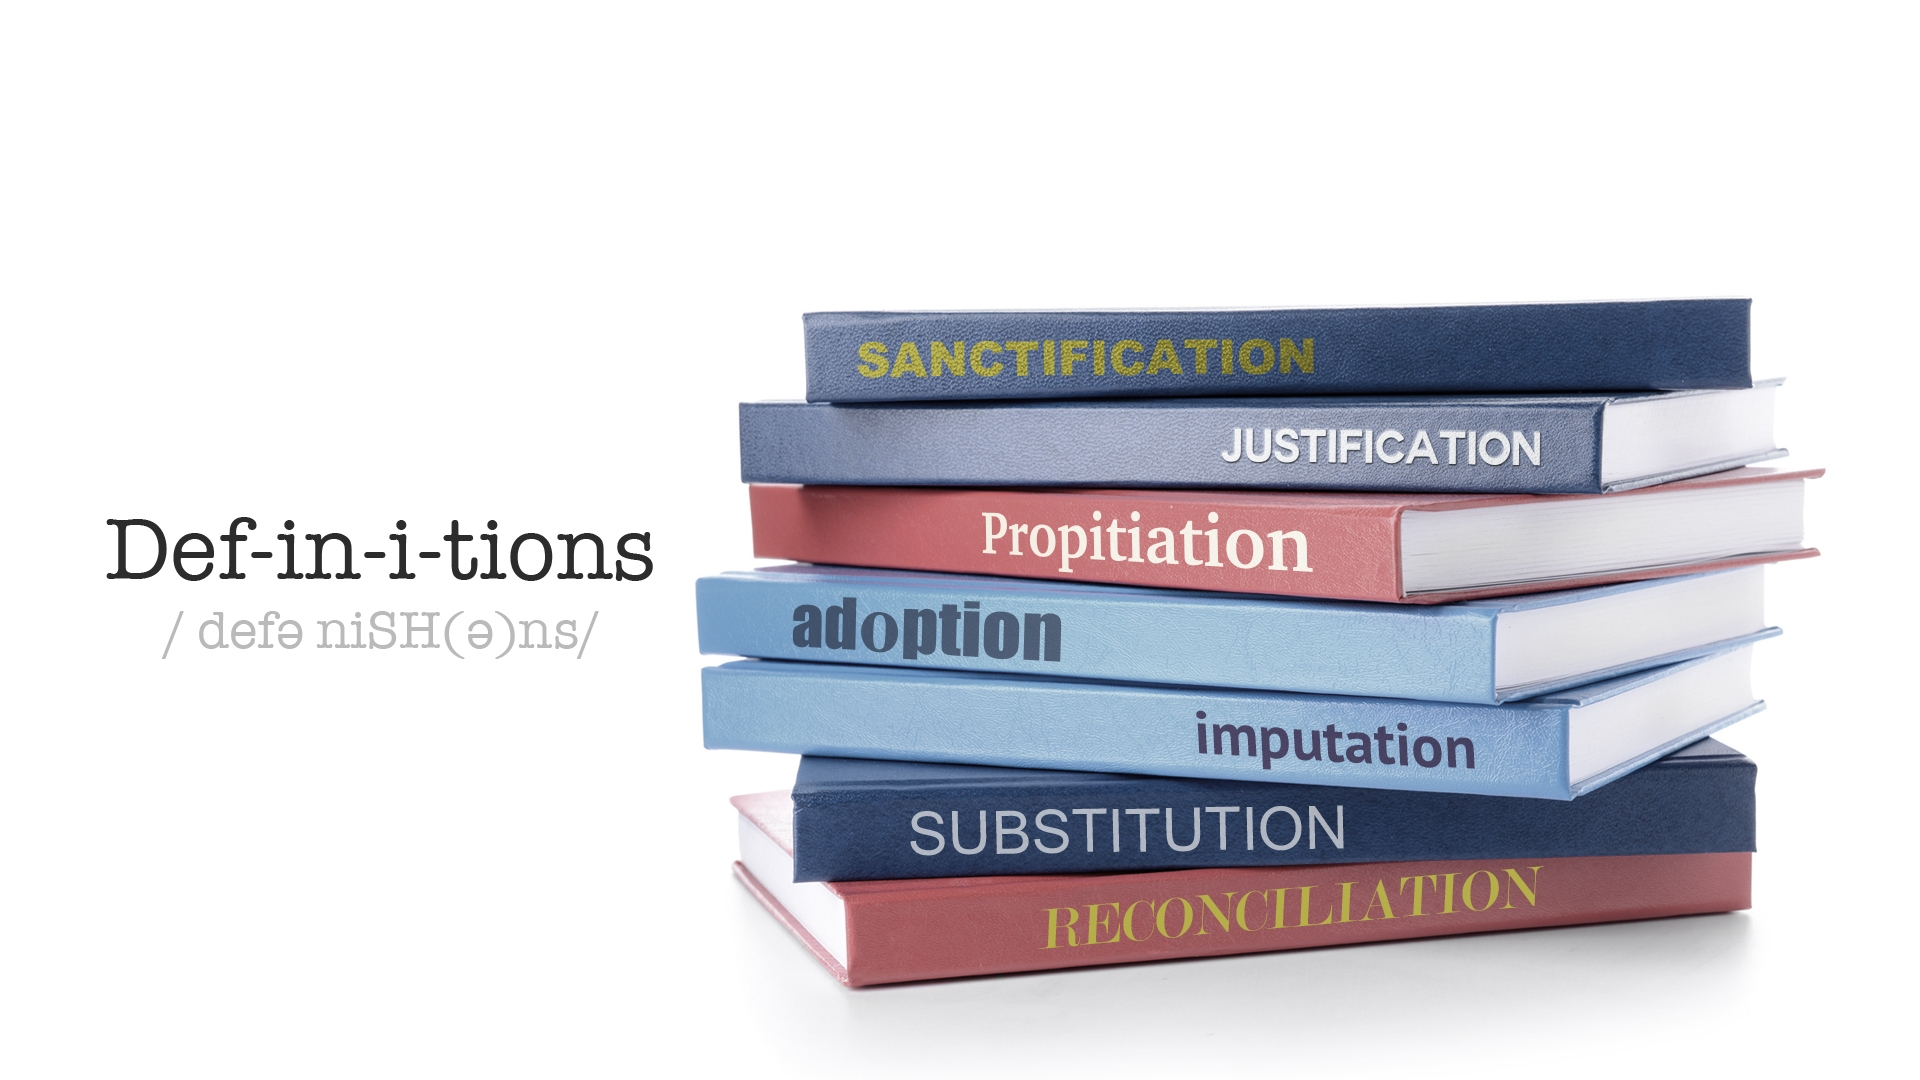 Definitions: Propitiation